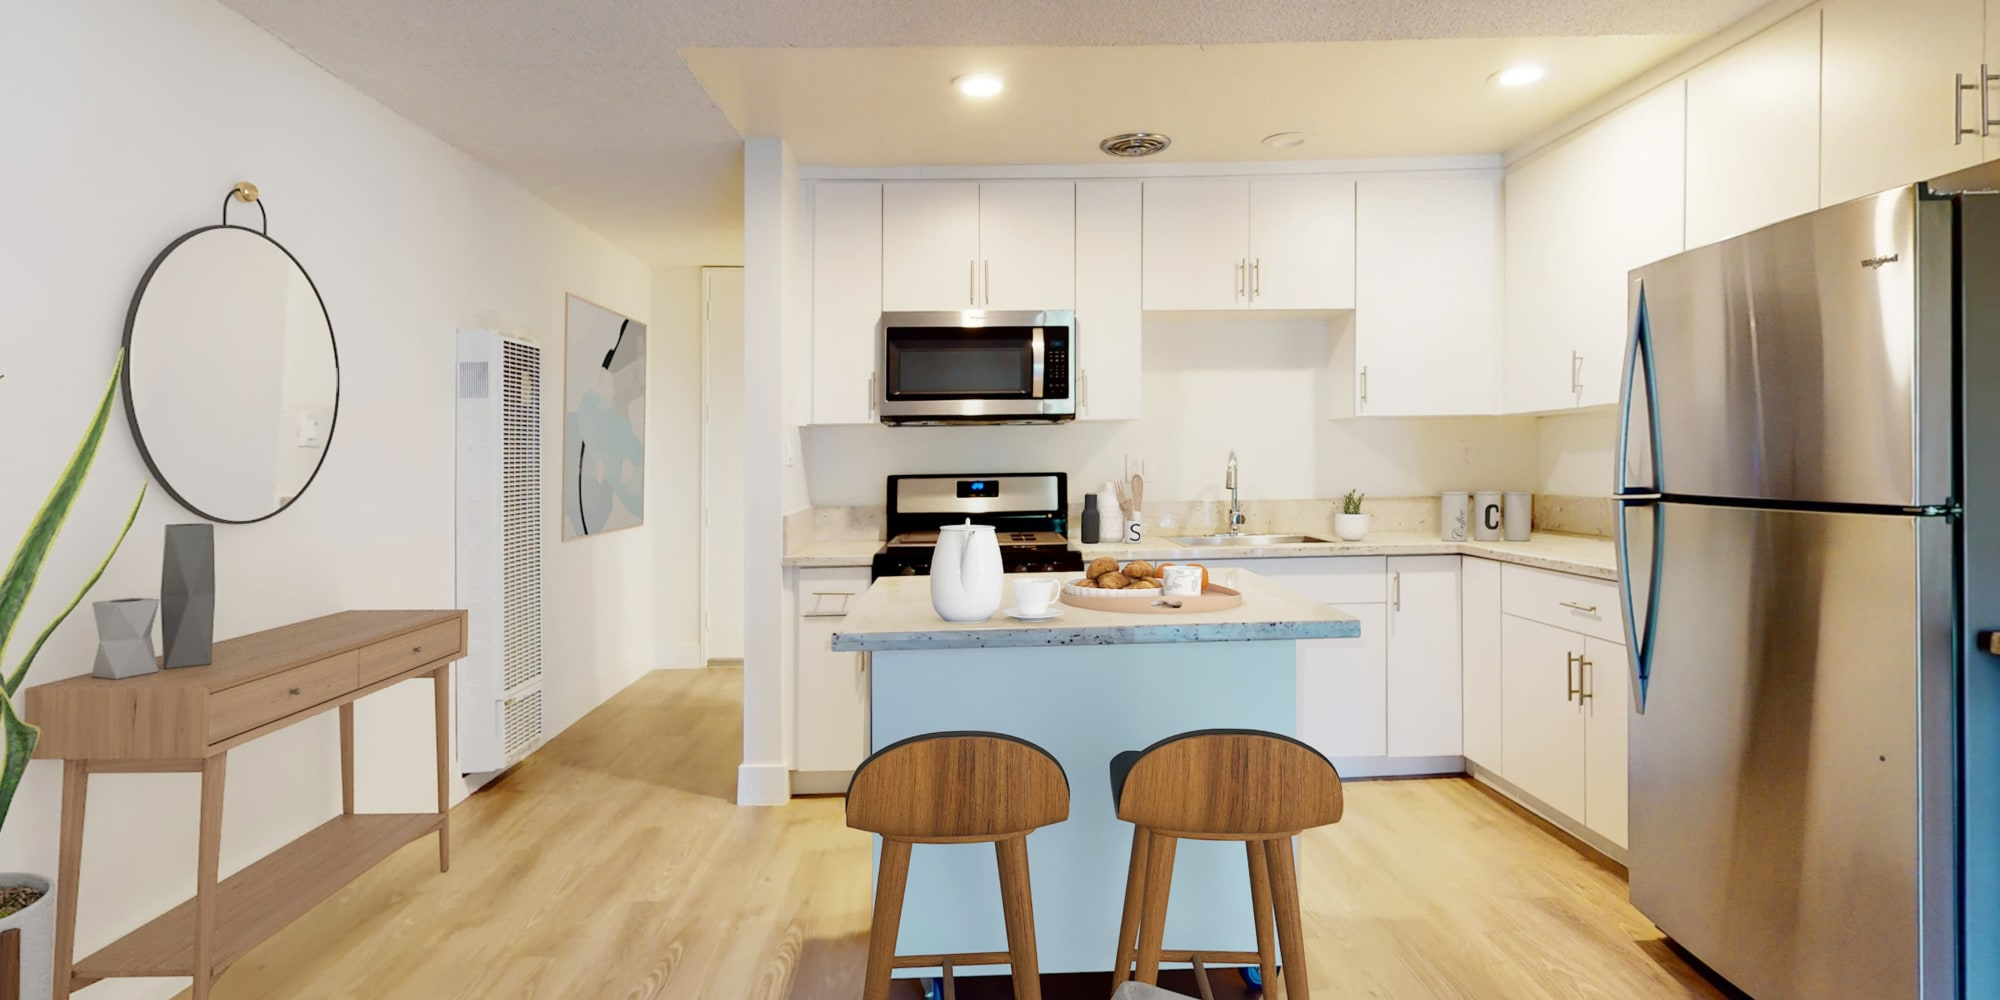 Studio apartment with free-standing island at Mediterranean Village in West Hollywood, California